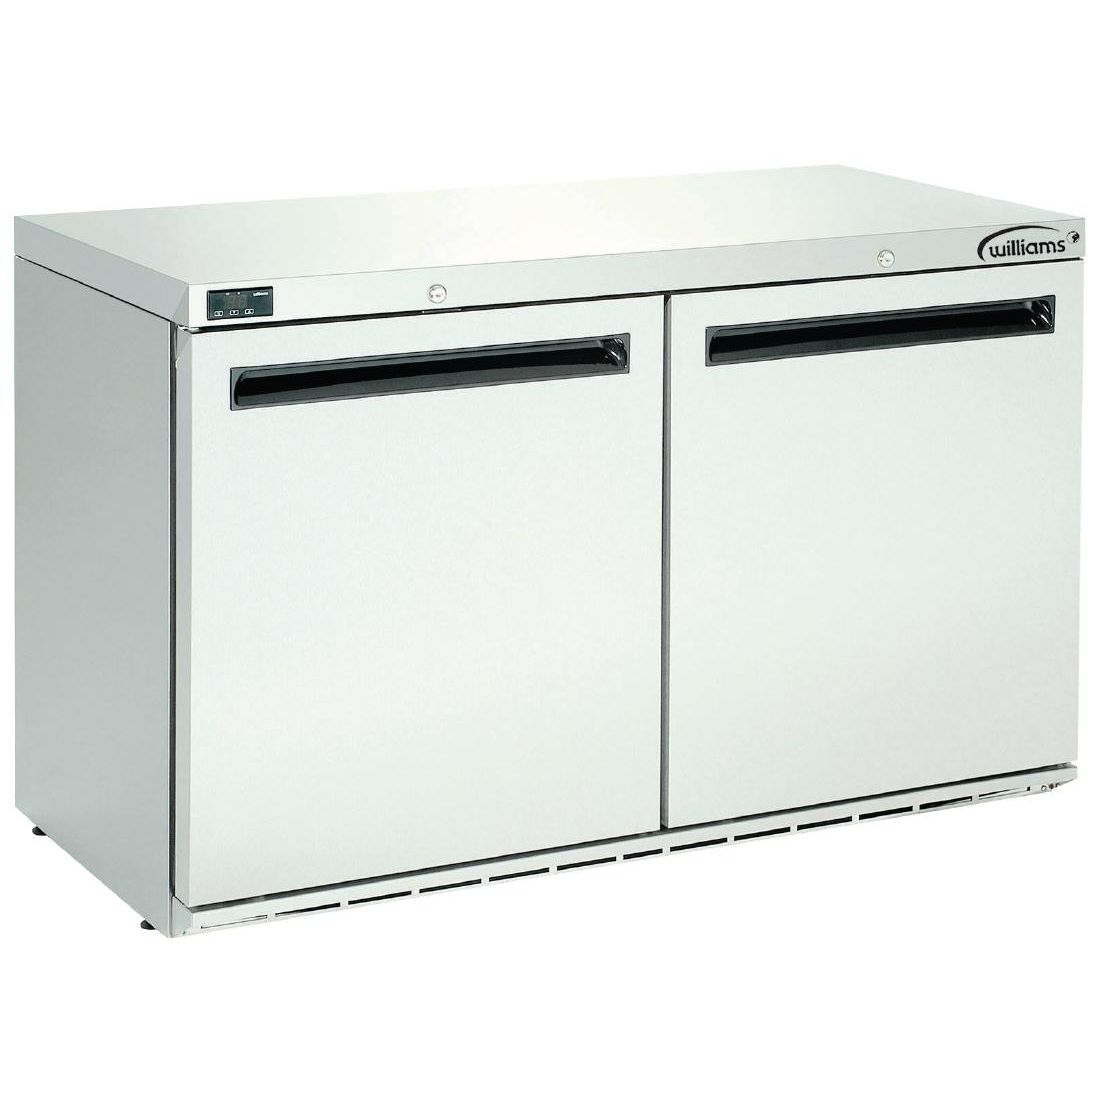 Charming Williams Double Door Undercounter Fridge